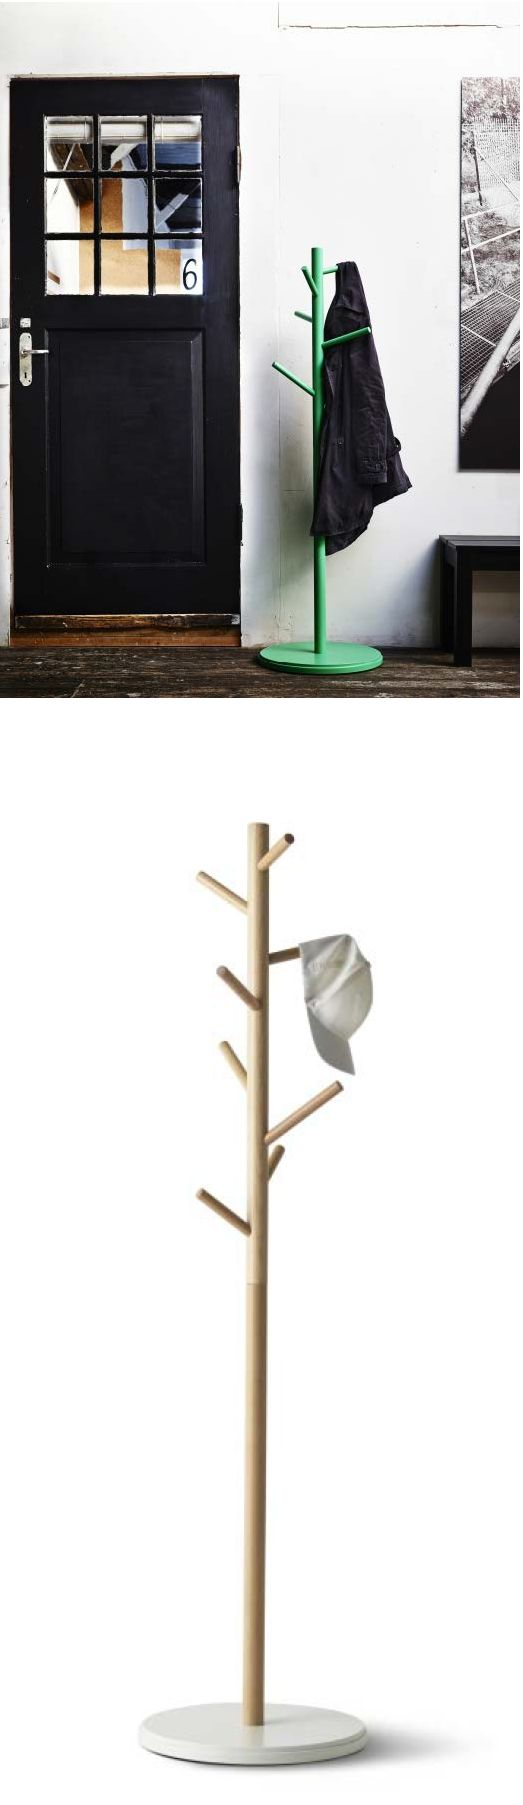 Free standing coat rack ikea woodworking projects plans for Ikea coat and hat rack